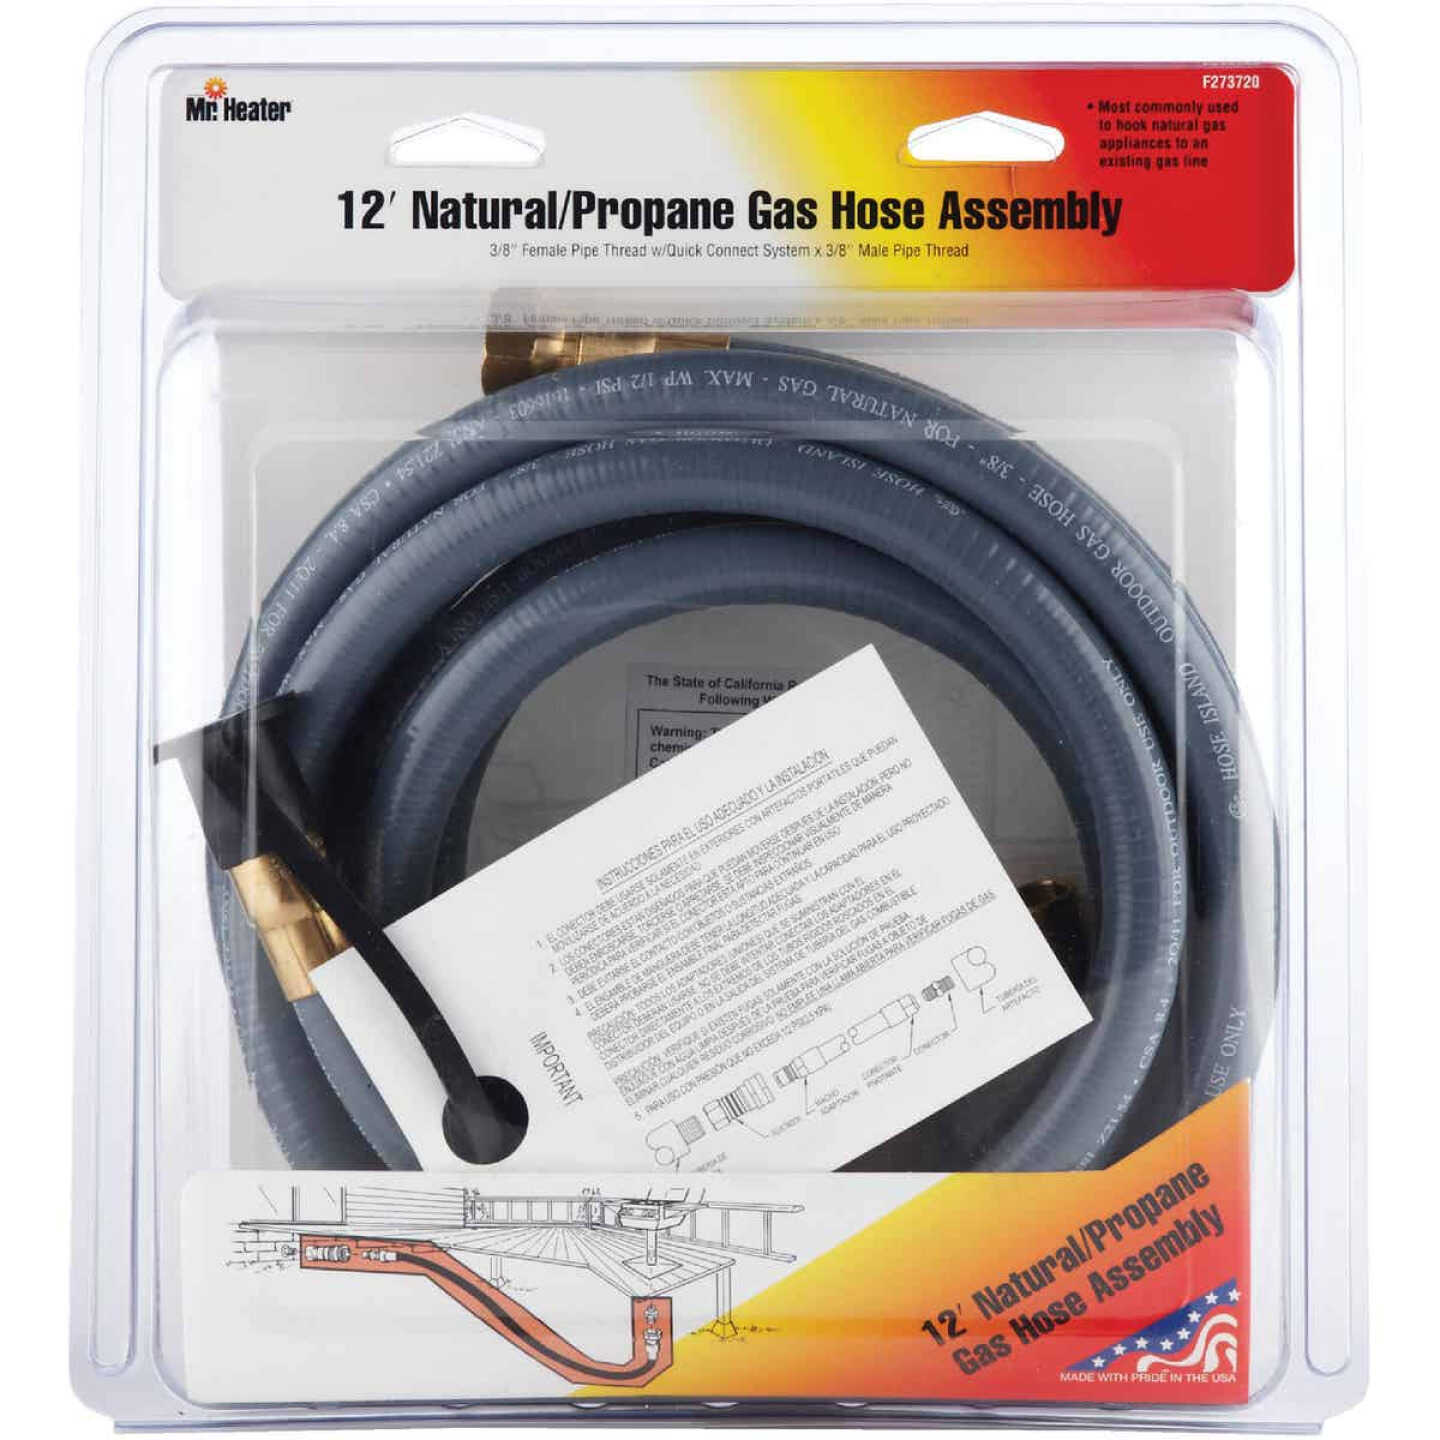 MR. HEATER 12 Ft. 3/8 In. Thermoplastic Natural/Propane Gas Patio Hose Assembly Image 2